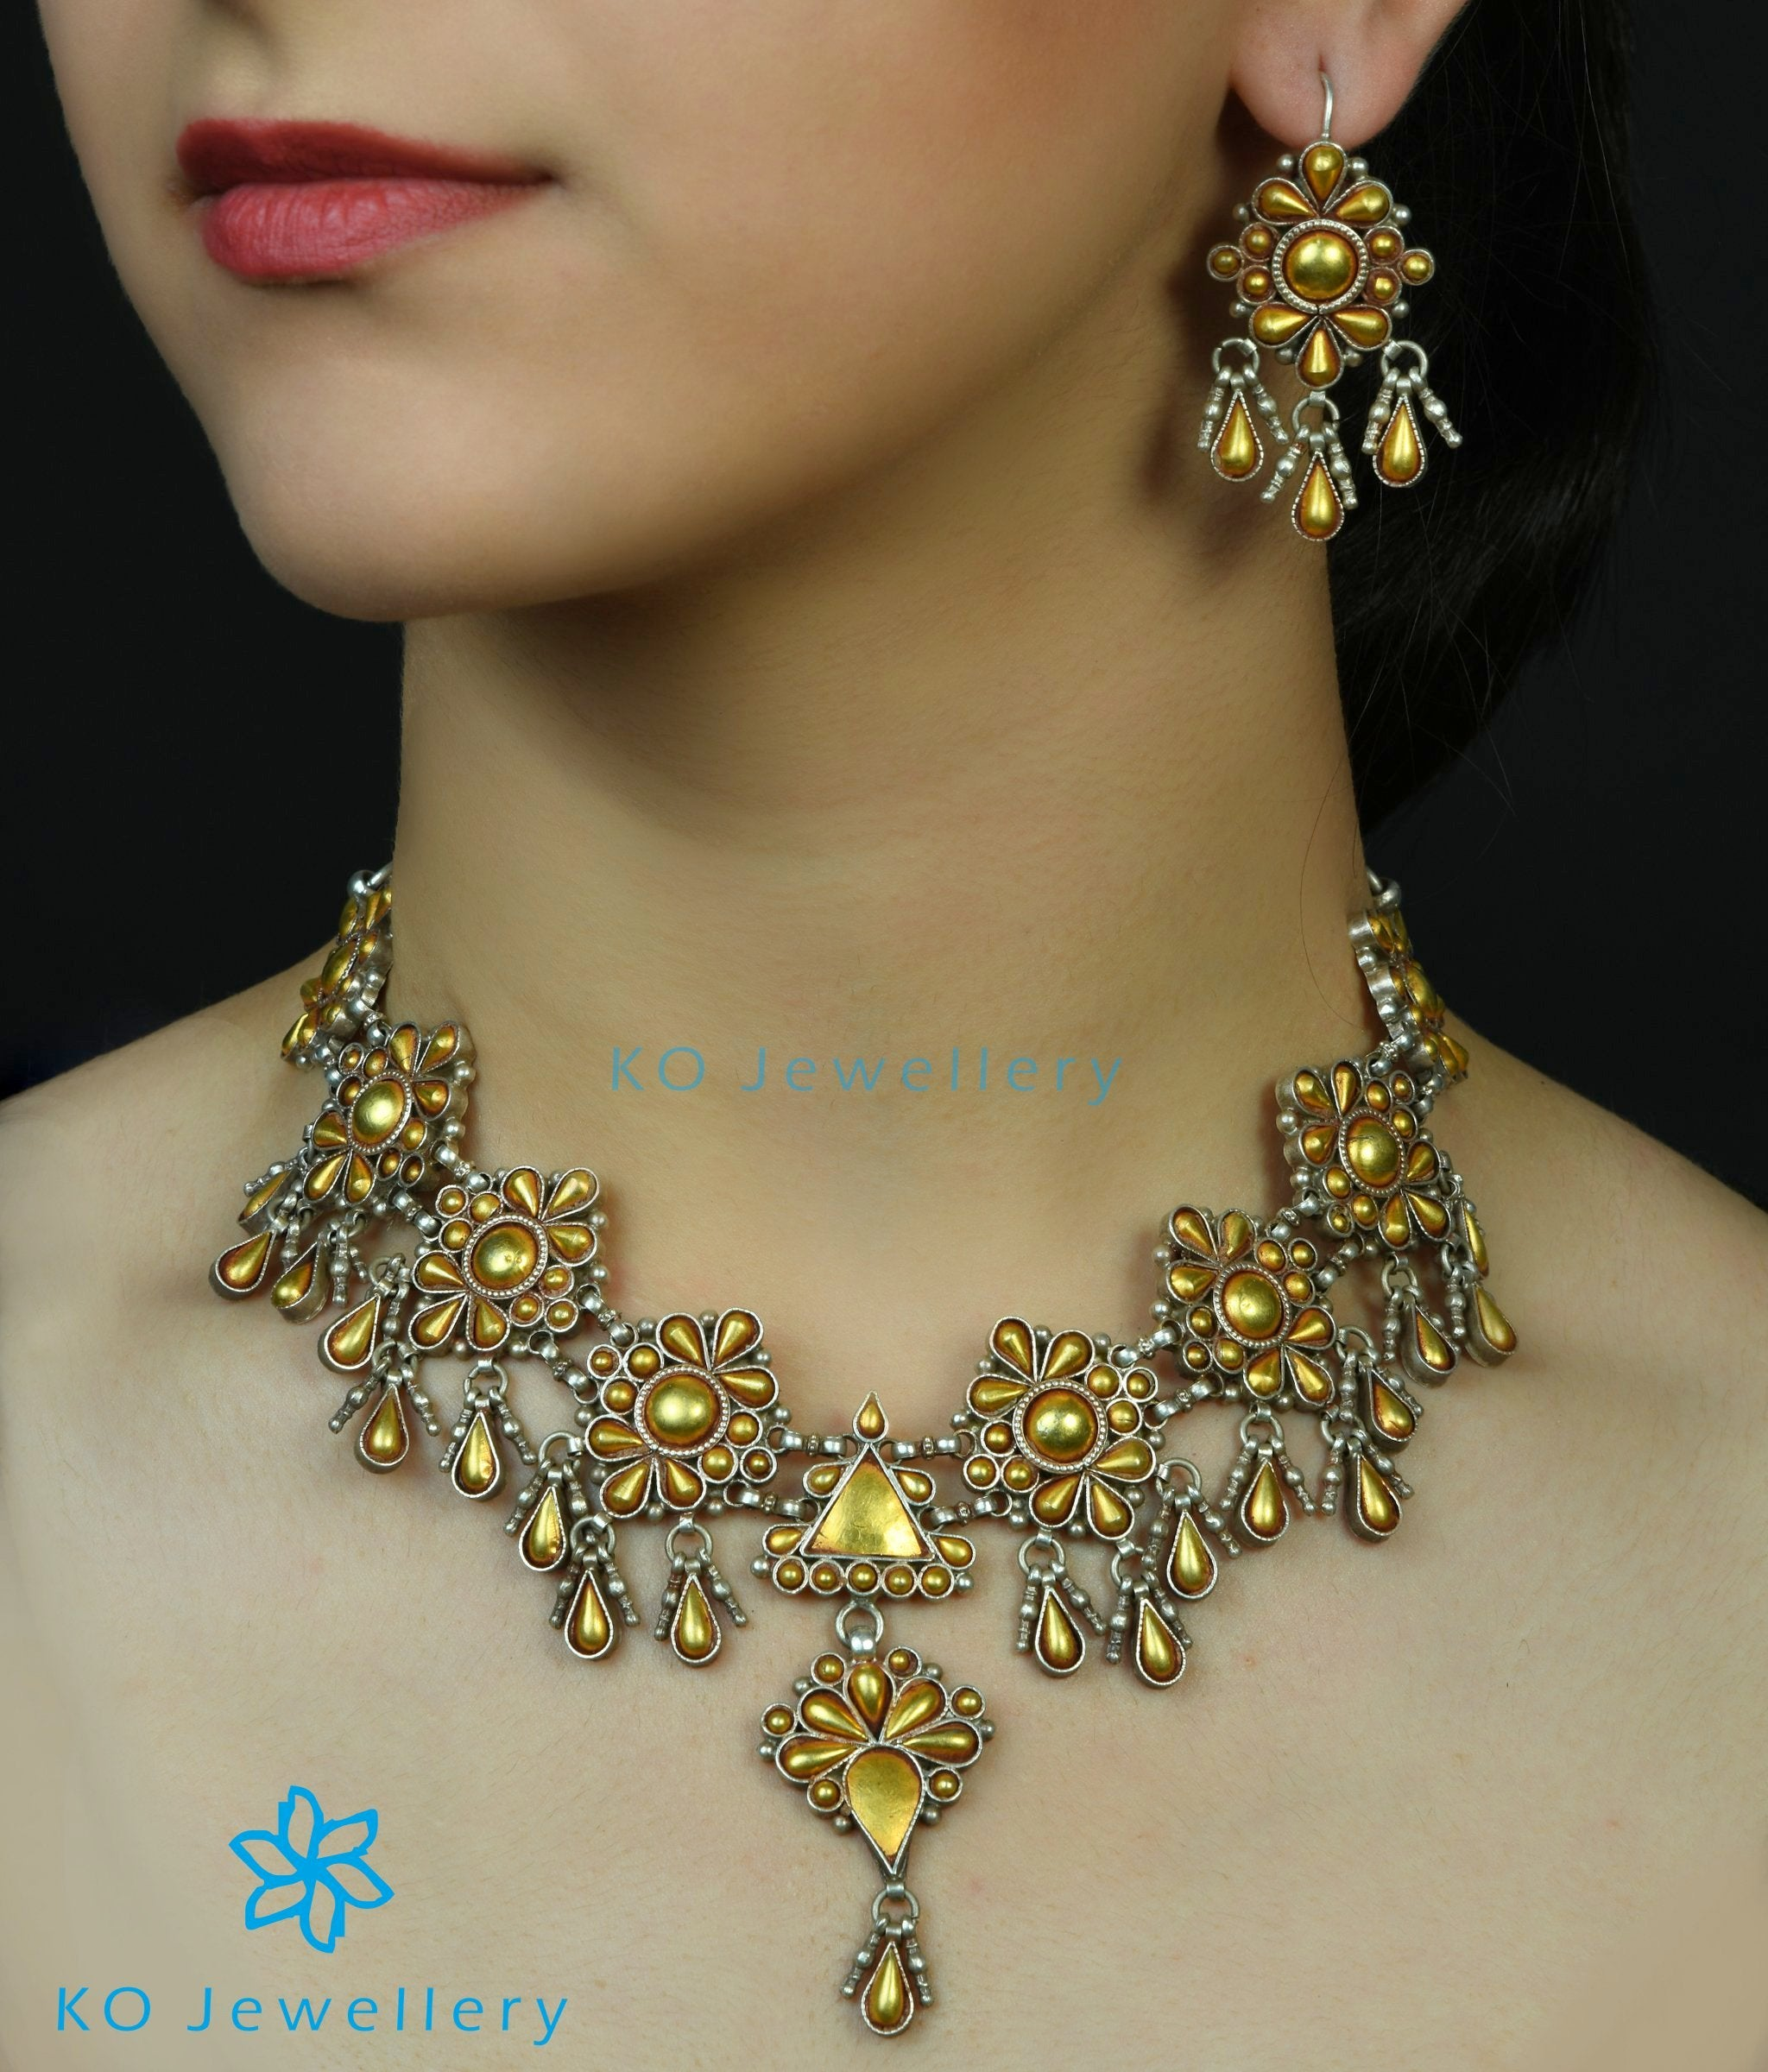 53cbe23d6297 necklaces Page 3 - KO Jewellery